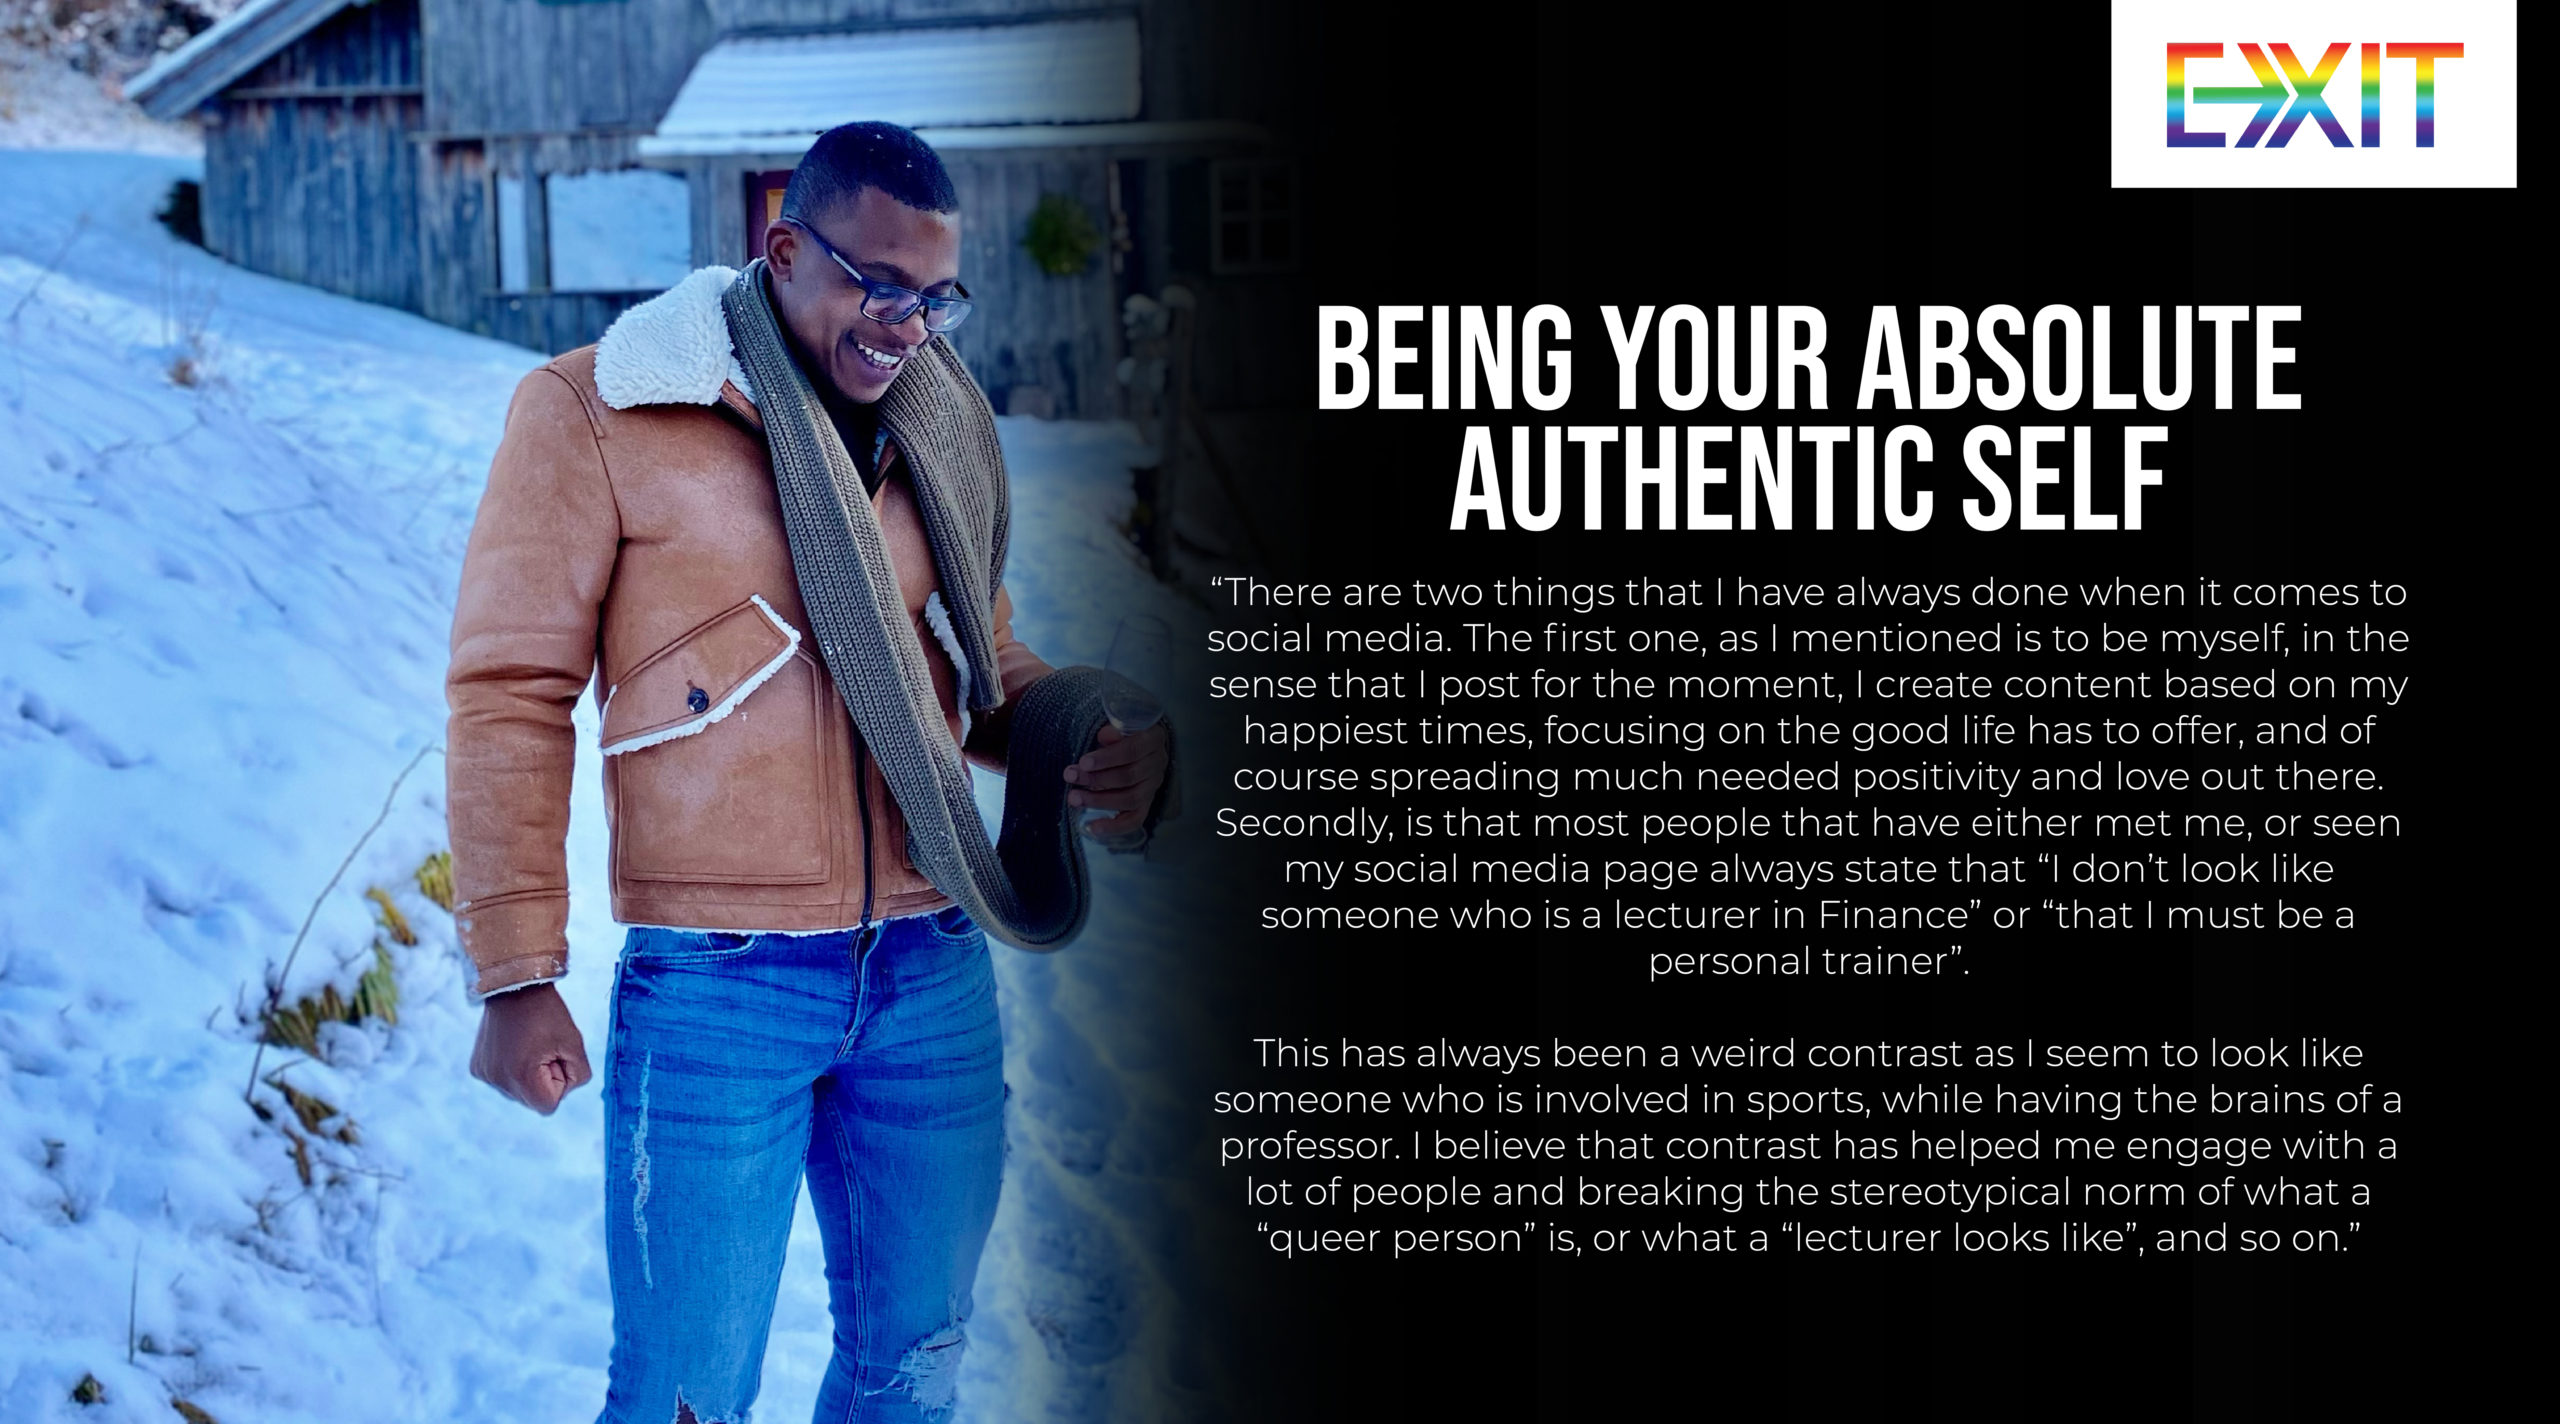 BEING YOUR ABSOLUTE AUTHENTIC SELF